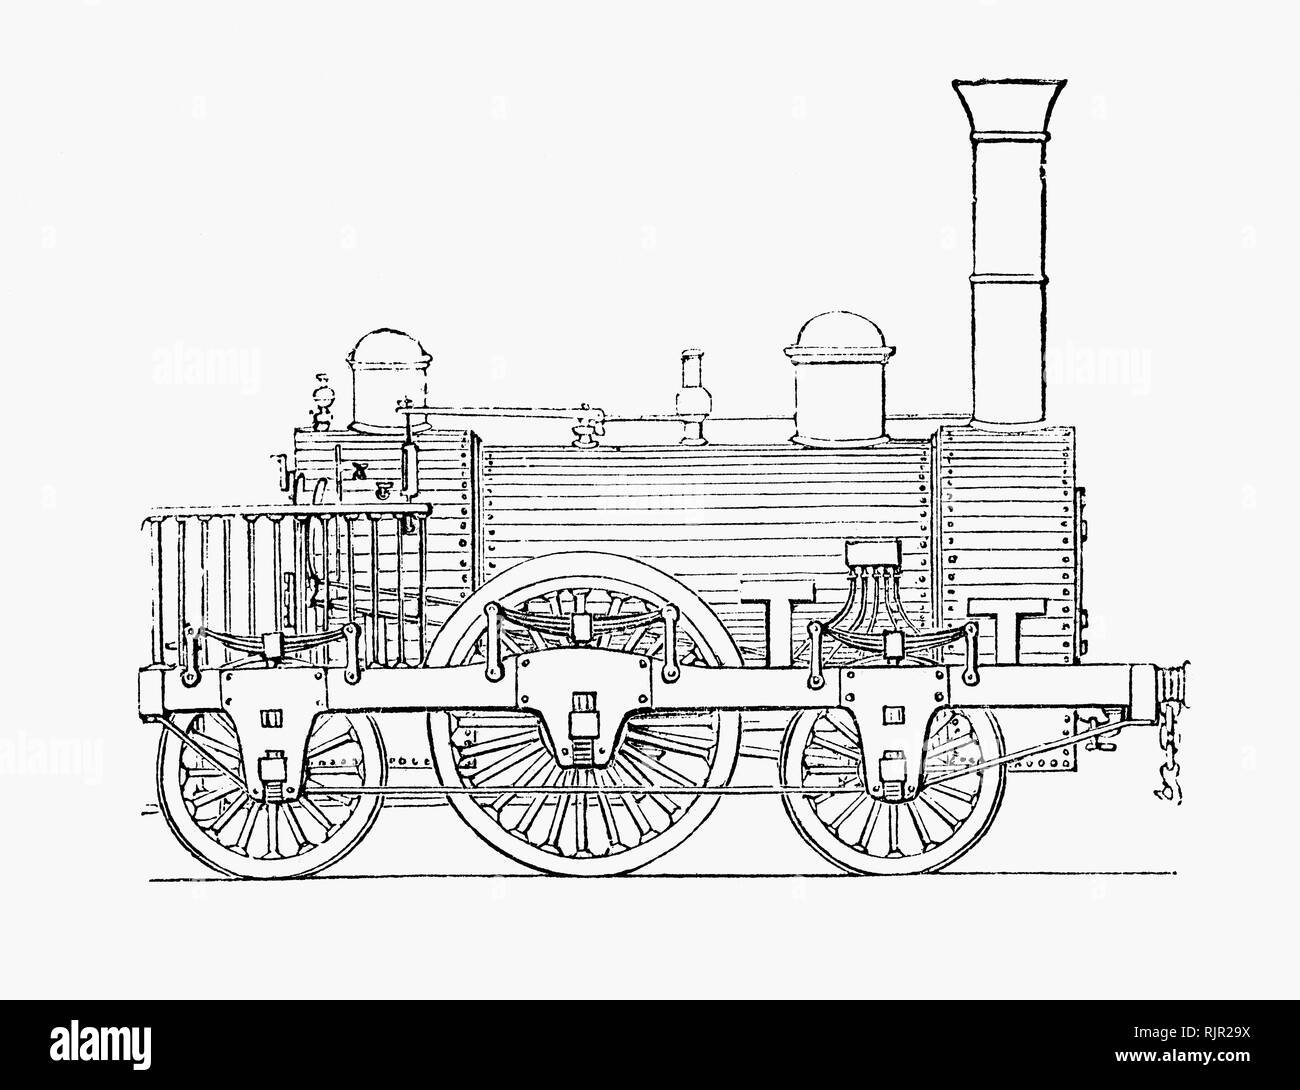 Drawing Of Steam Locomotive Stock Photos & Drawing Of Steam